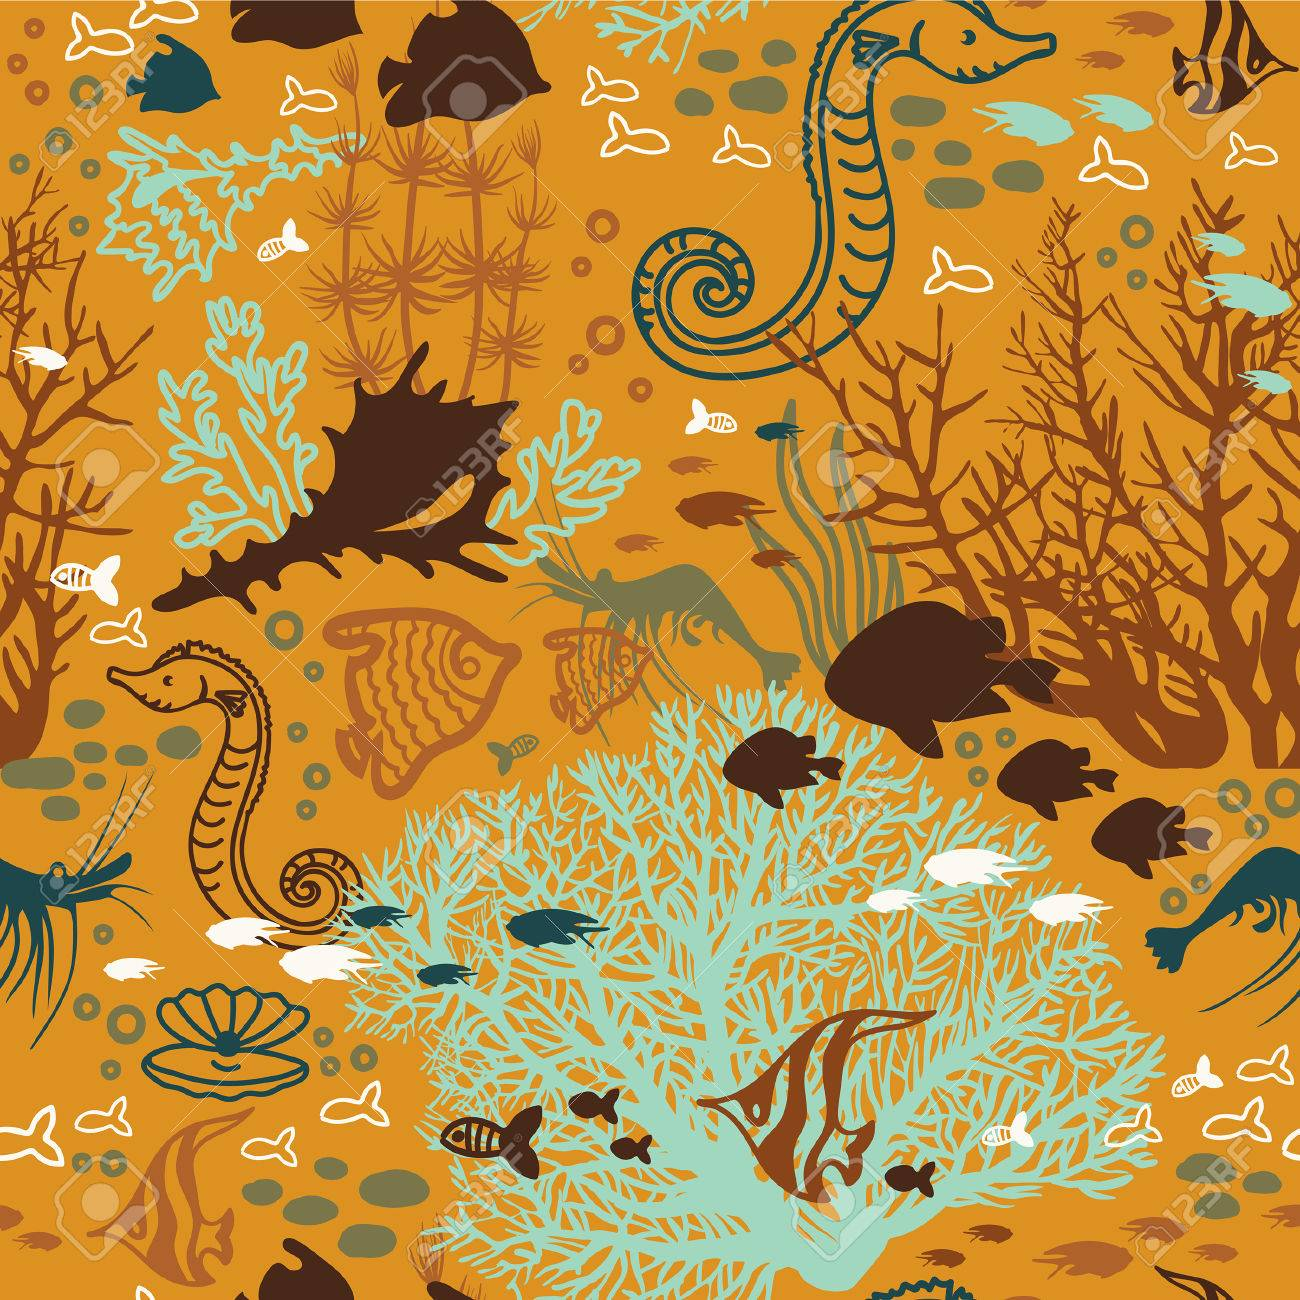 Underwater Sea Life Seamless Pattern With Coral Reef Fish Seashells And Another Ocean